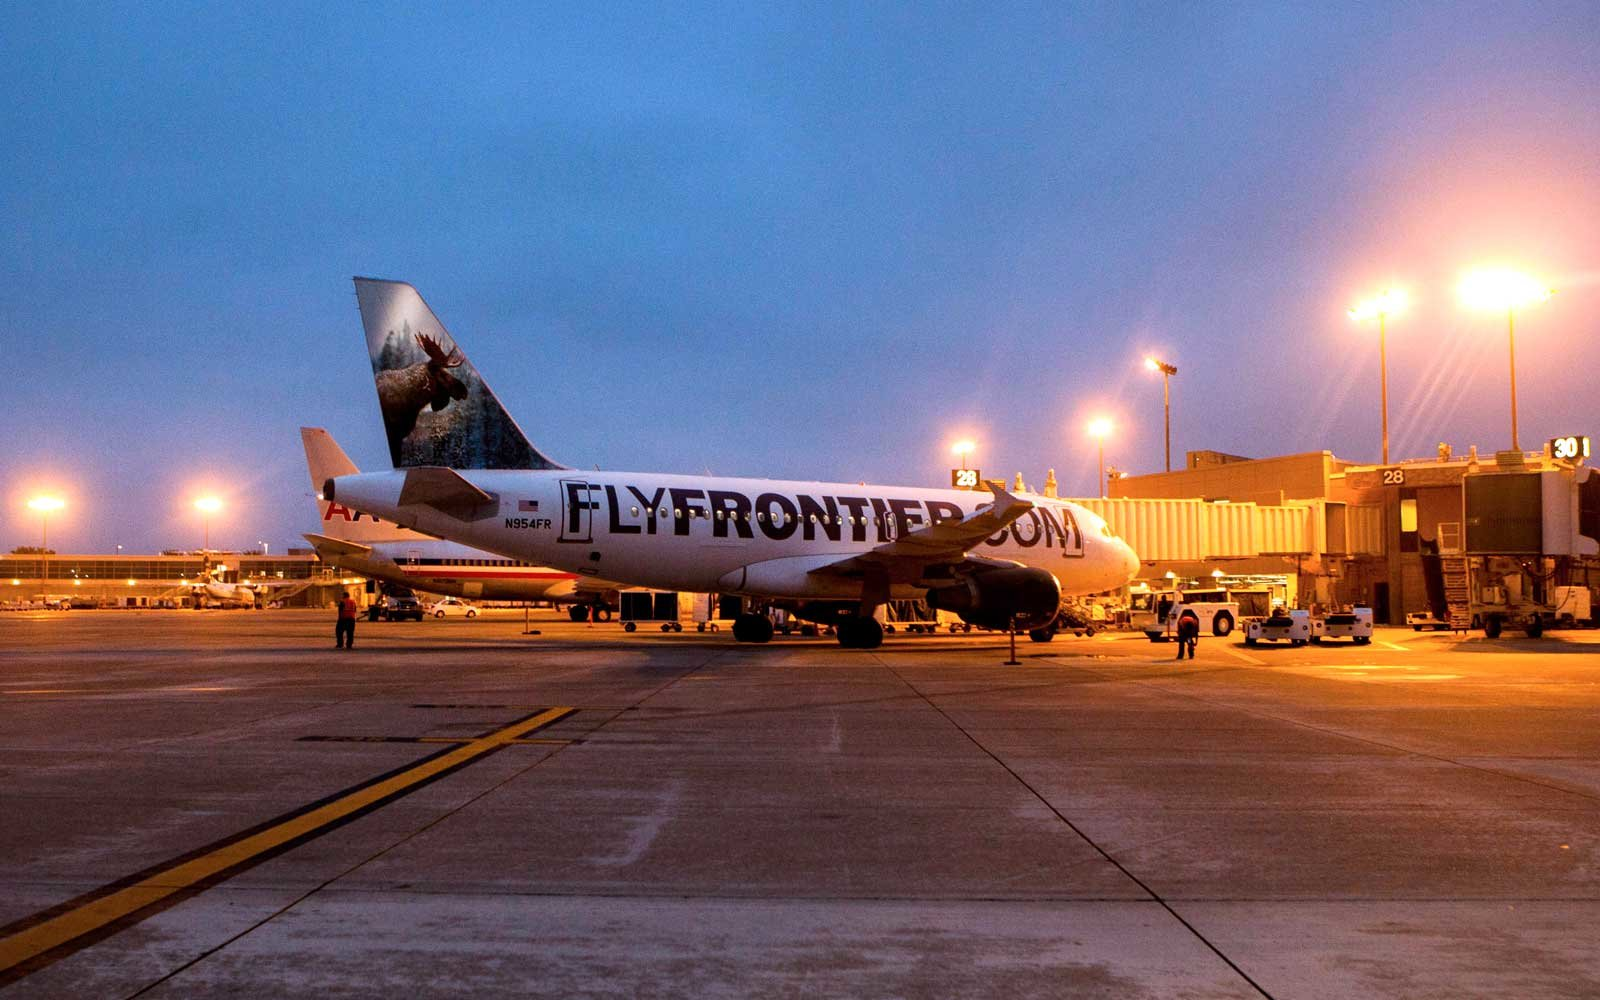 Frontier Airlines Plane at the Airport